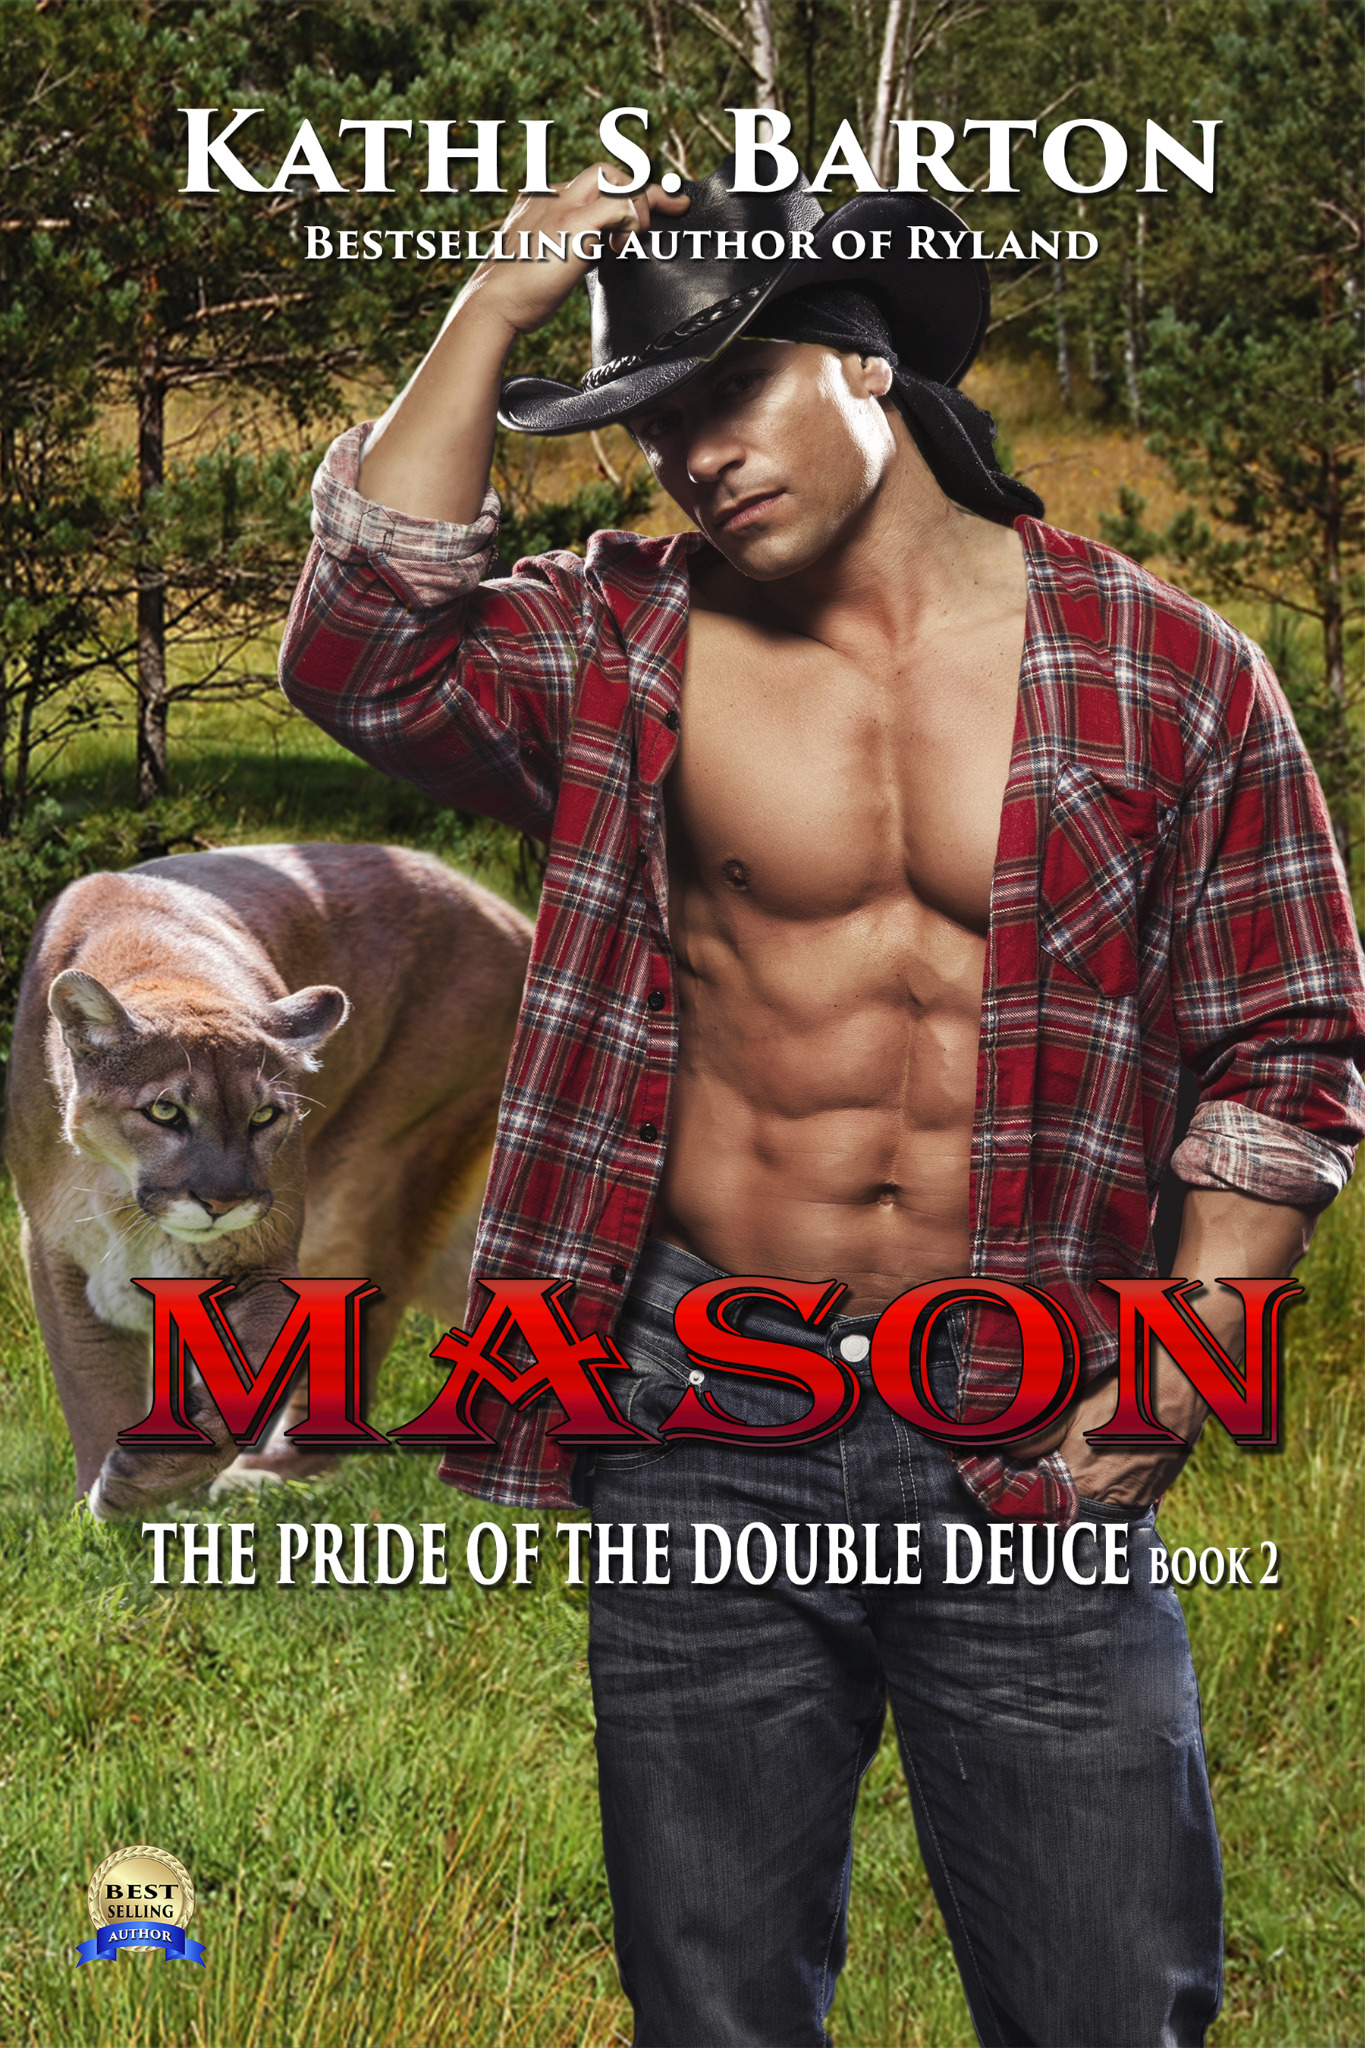 Mason - The Pride of the Double Deuce Book 2